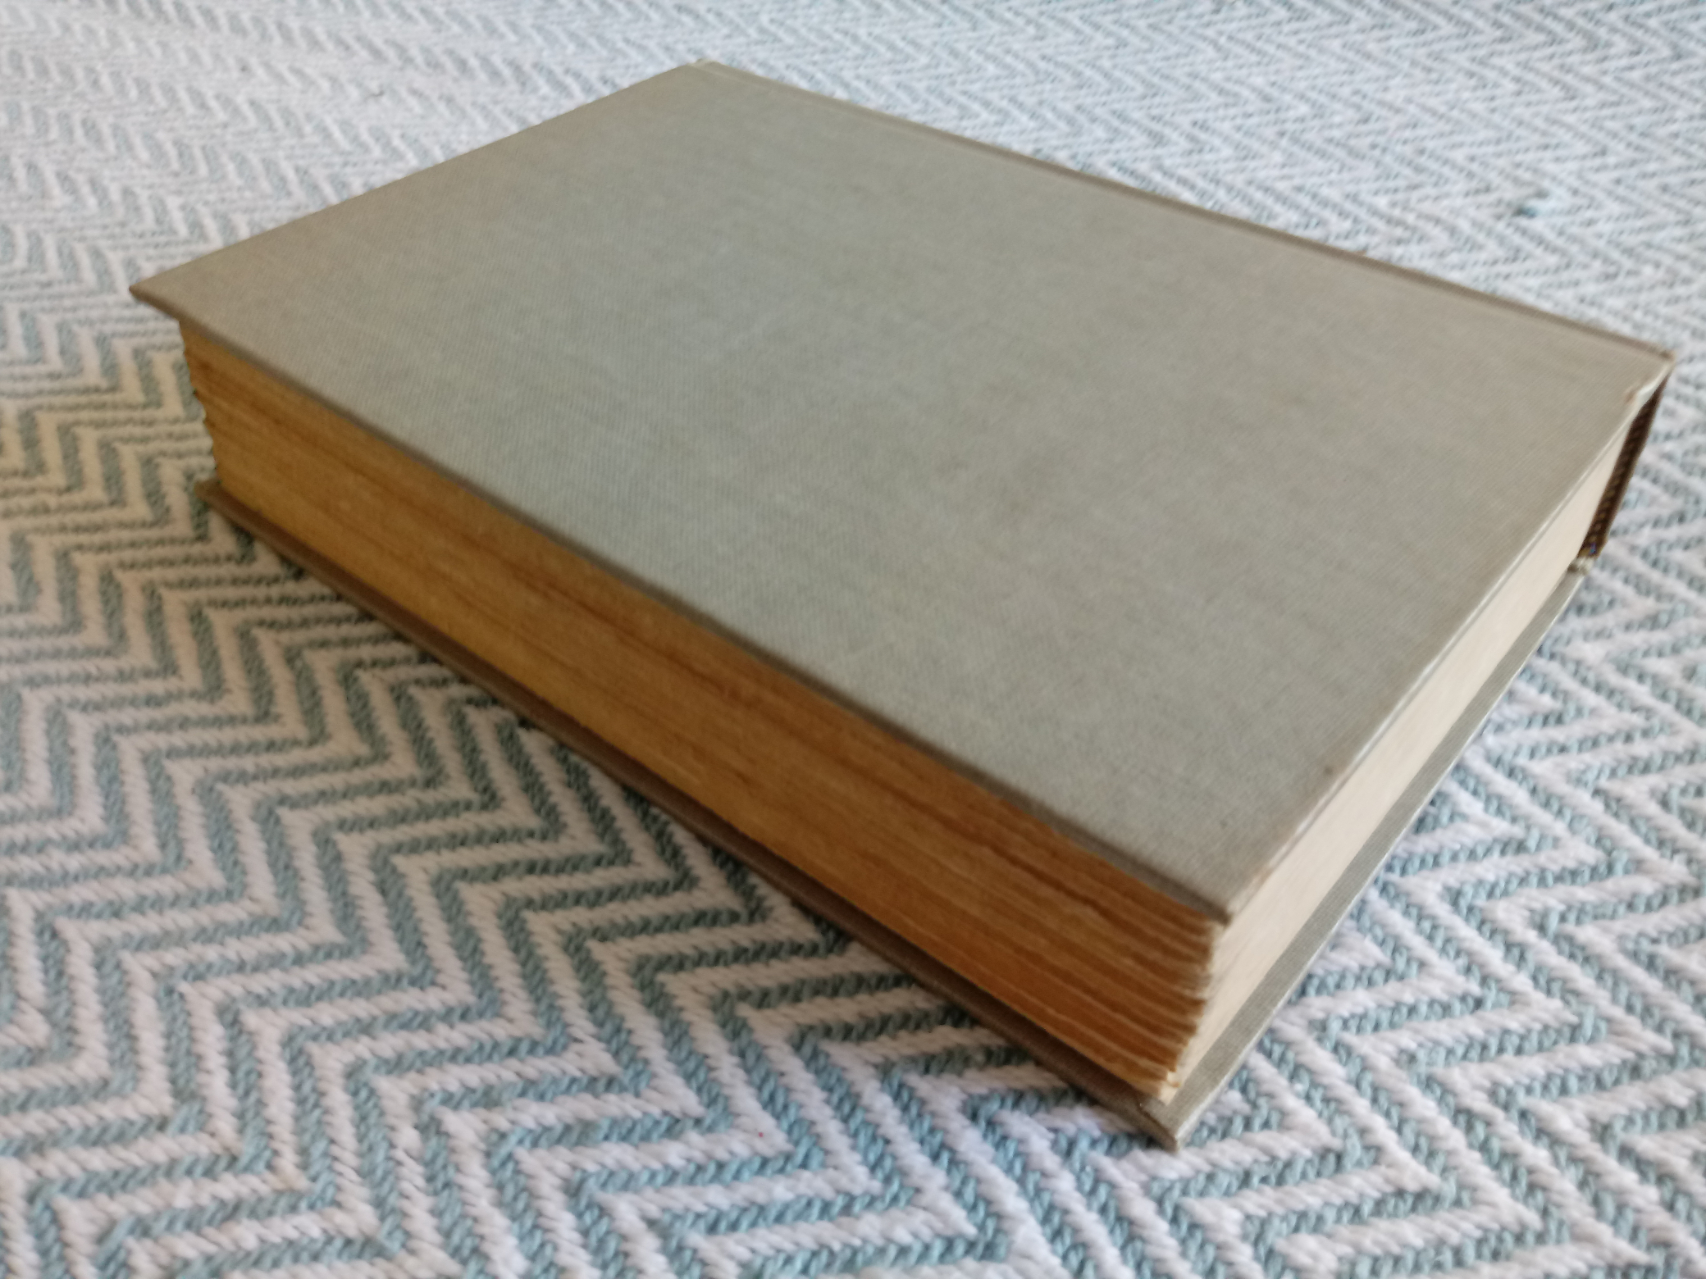 2 x The Tontine Volumes 1&2 by Thomas B. Costain hardback books 465 and 930 pages with inscription - Image 3 of 8